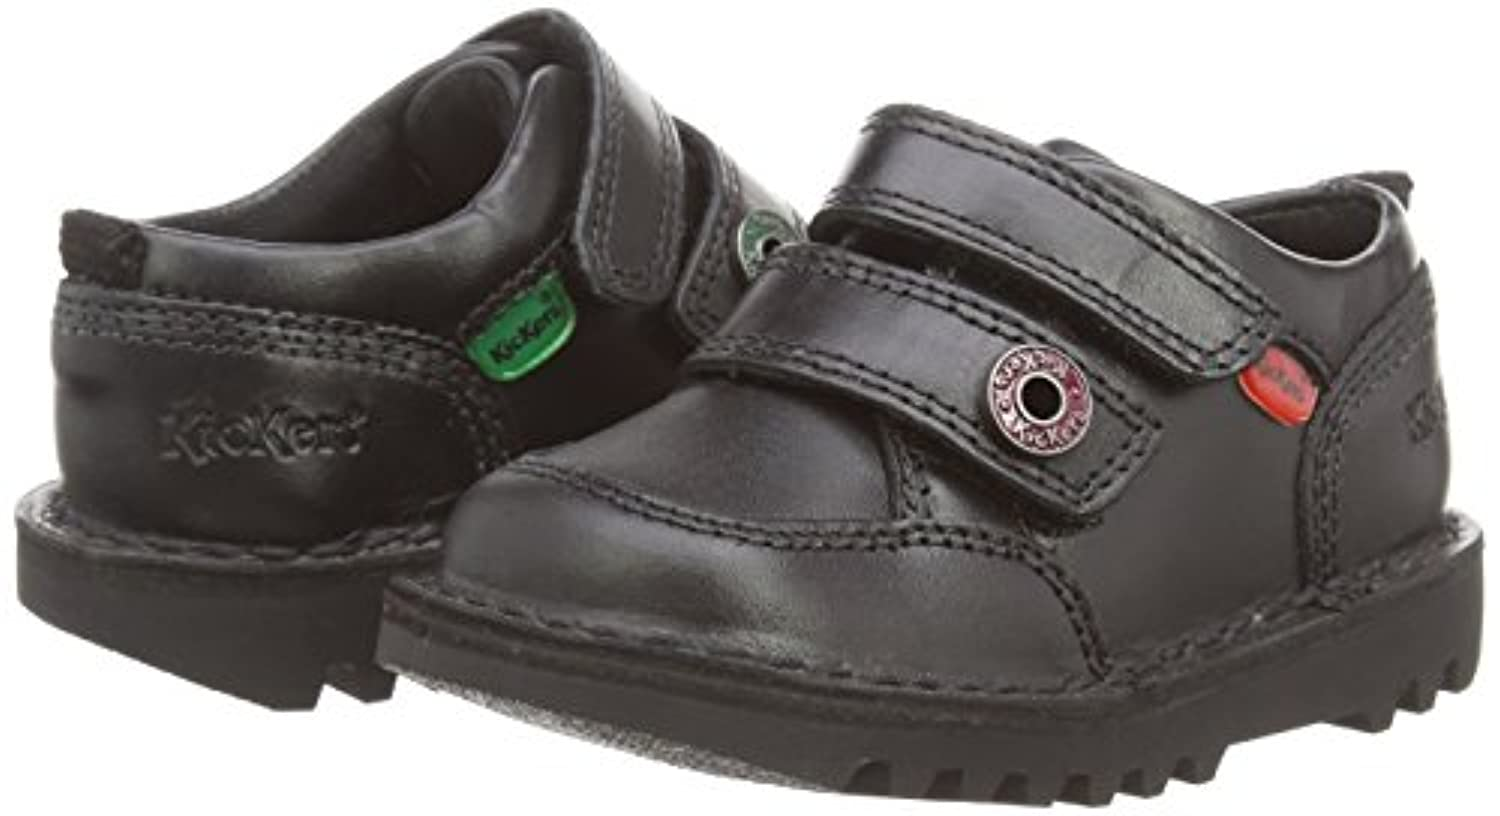 Kickers Kick Racer Mf Lthr Im, Boys' Loafers, Black (Black), 5 Child UK (22 EU)